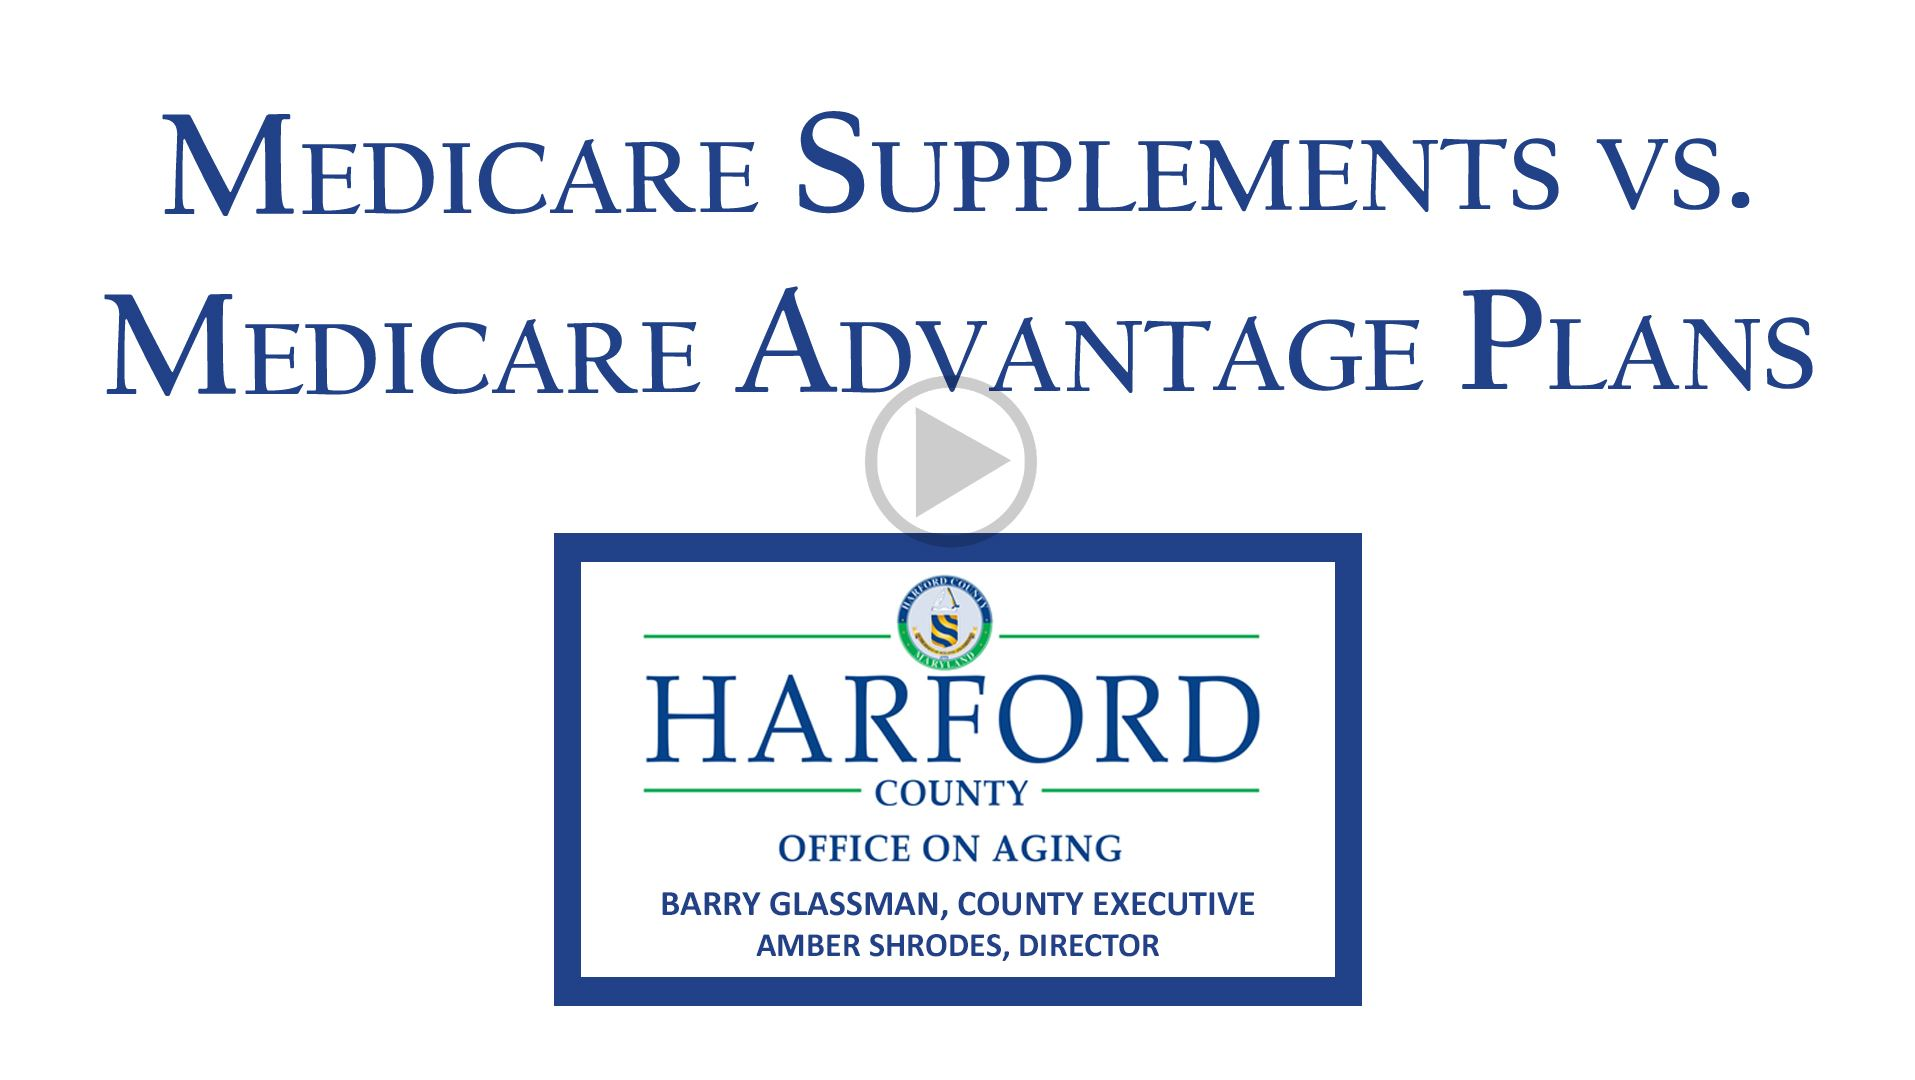 Medicare Supplements vs Medicare Advantage Plans Video Art